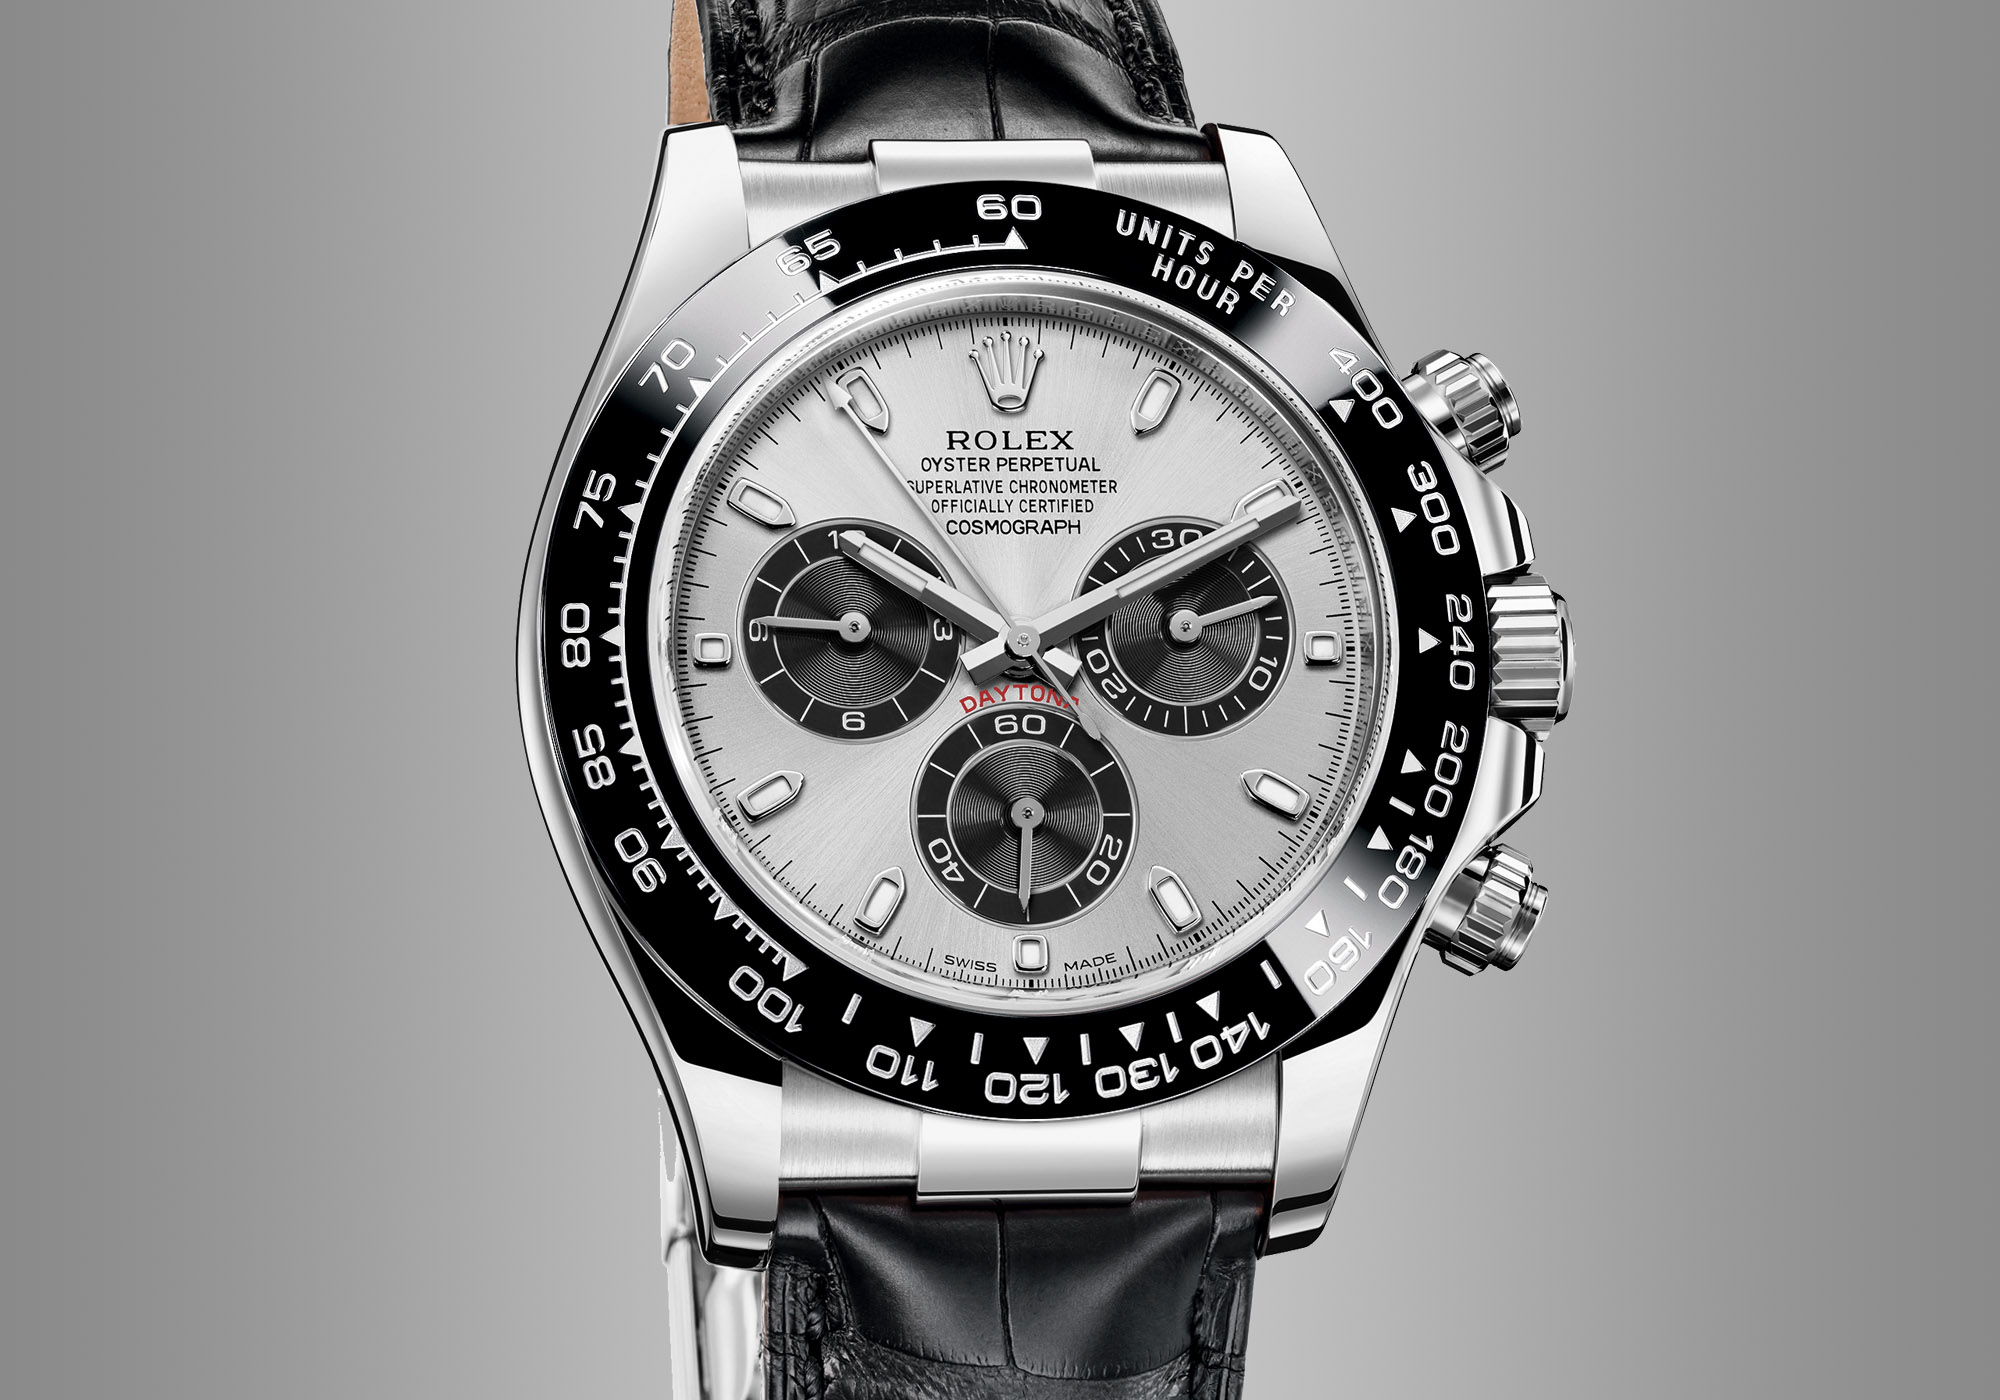 Rolex Daytona White Gold Ceramic Silver Dial leather - Rolex Baselworld 2017 - Rolex Predictions 2017